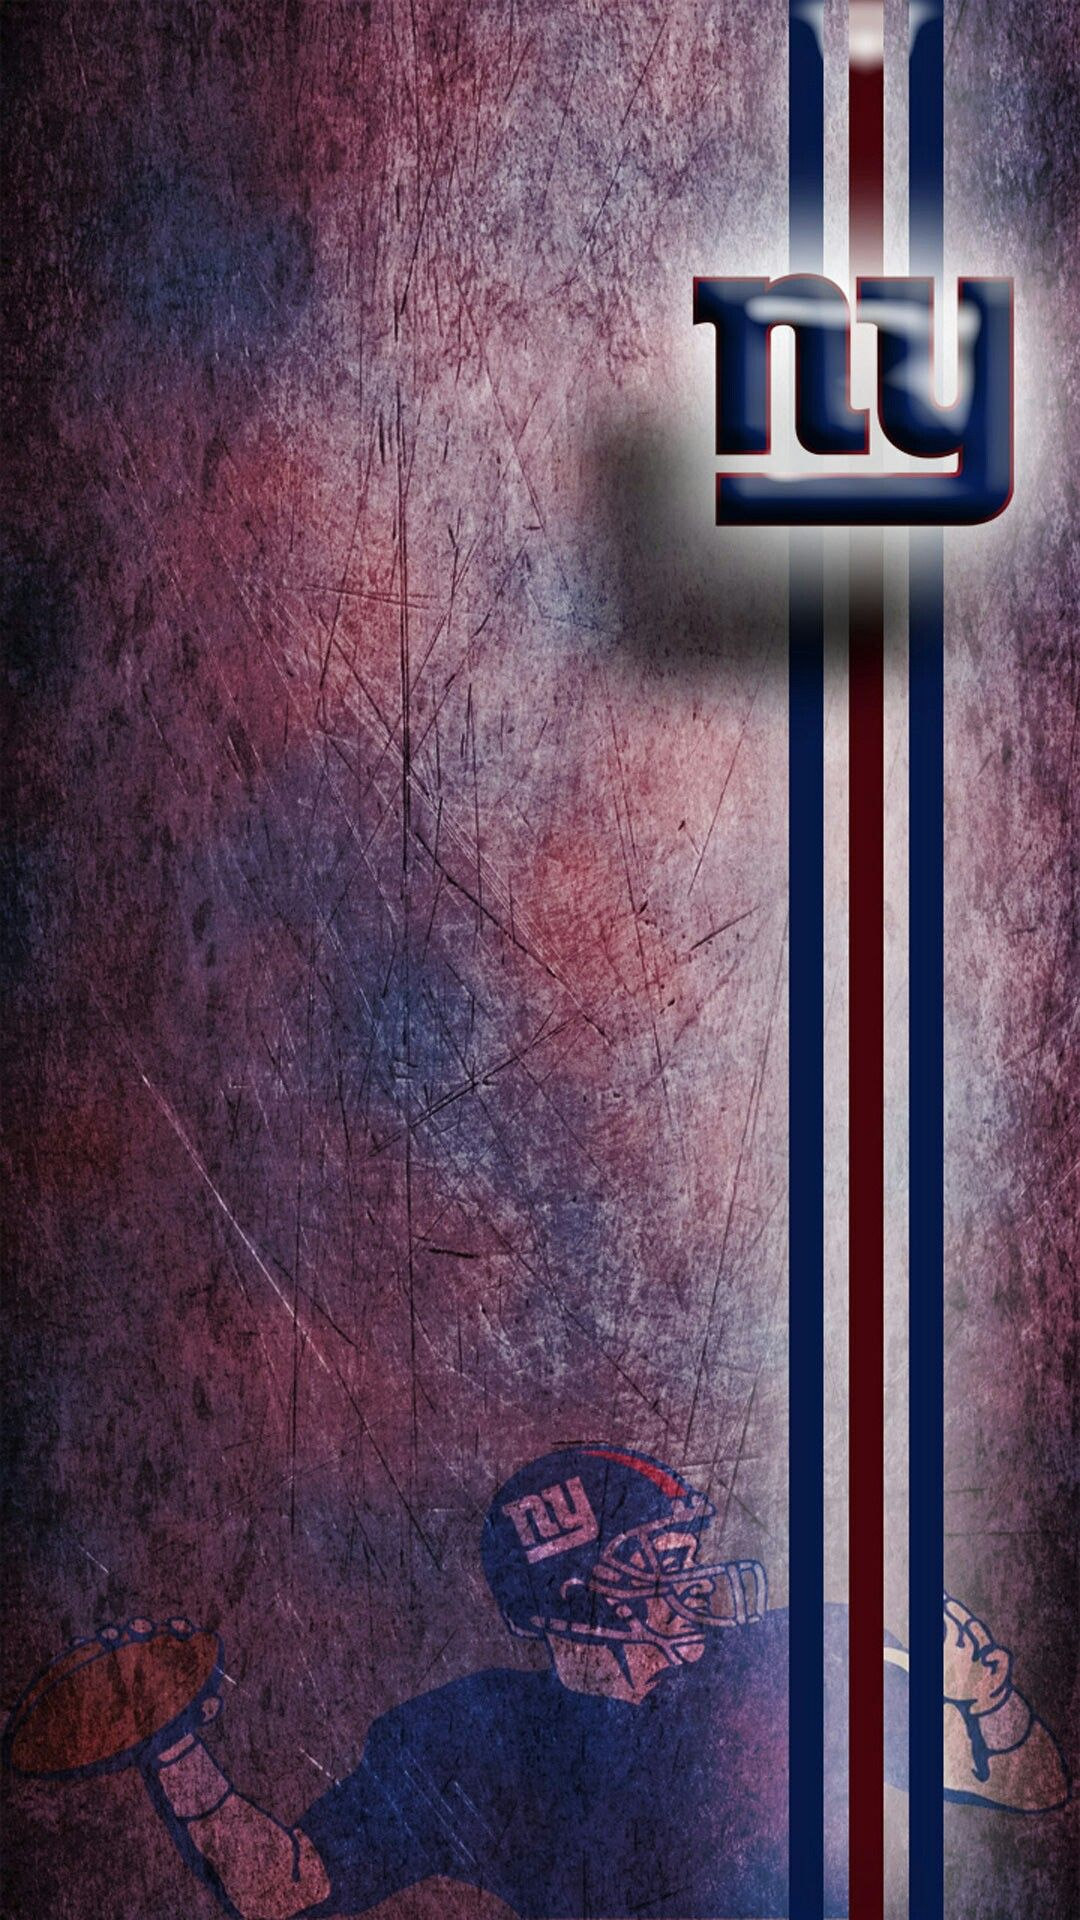 New York Giants wallpaper. | New York Giants | Pinterest | American football, Champion and Sport ...